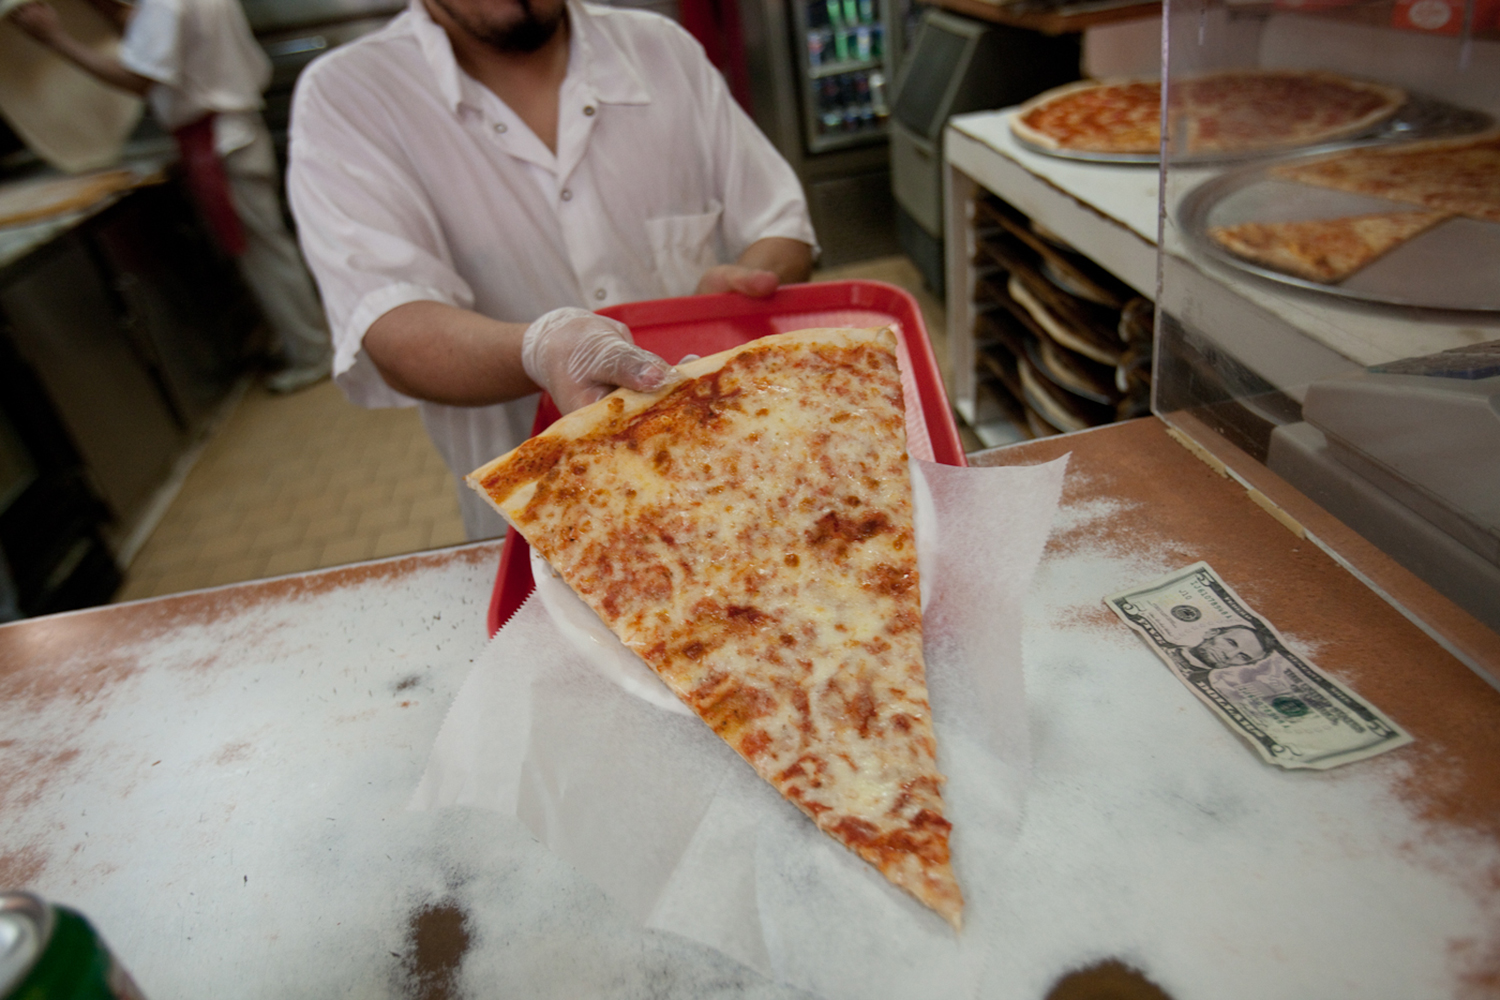 At $3.75 per slice, it's a meal option as cheap as any around.